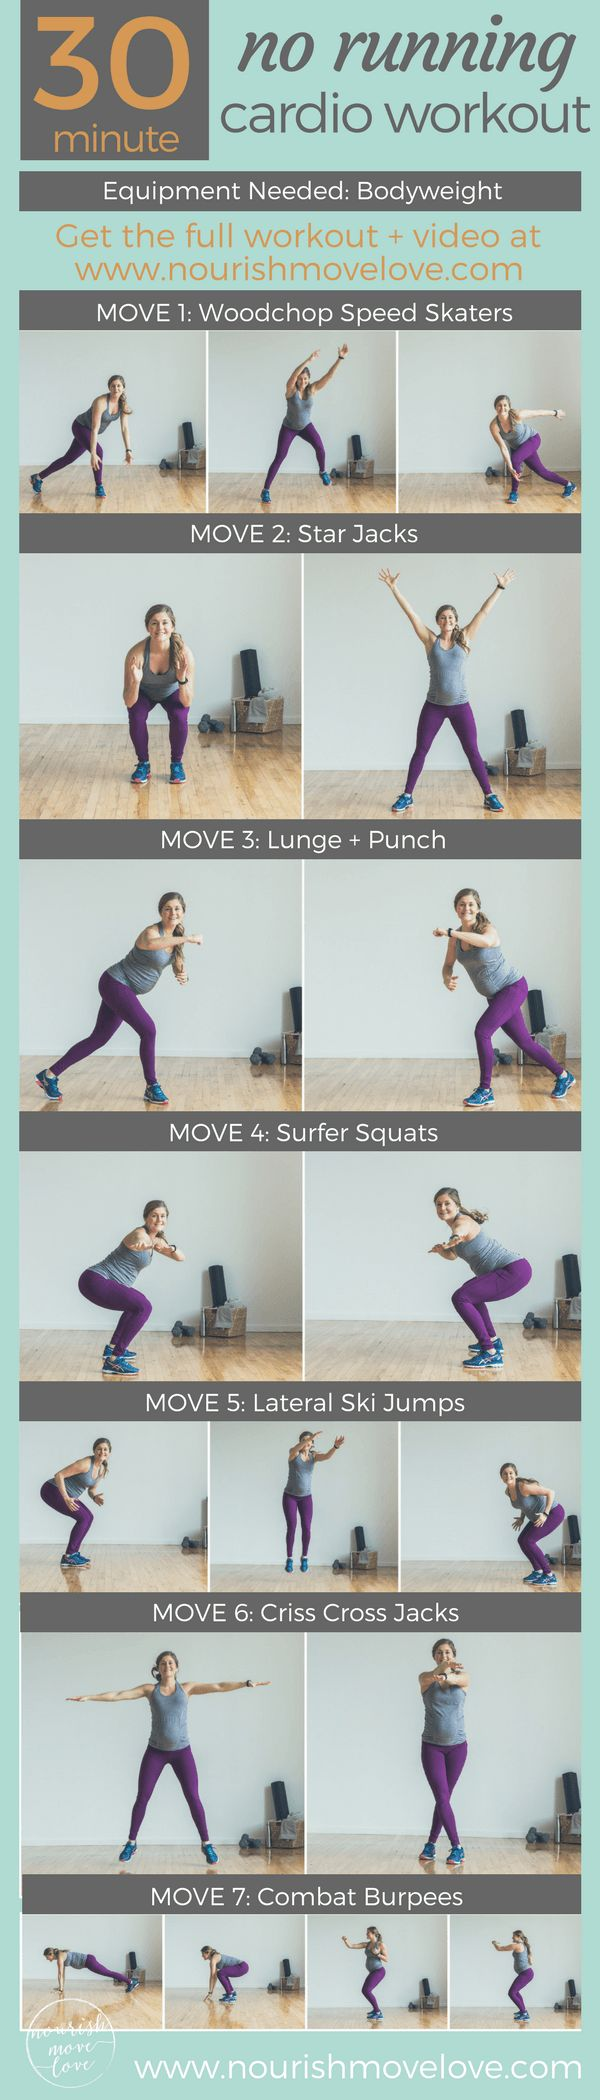 30-Minute, No Running At-Home Cardio Workout | www.nourishmovelove.com